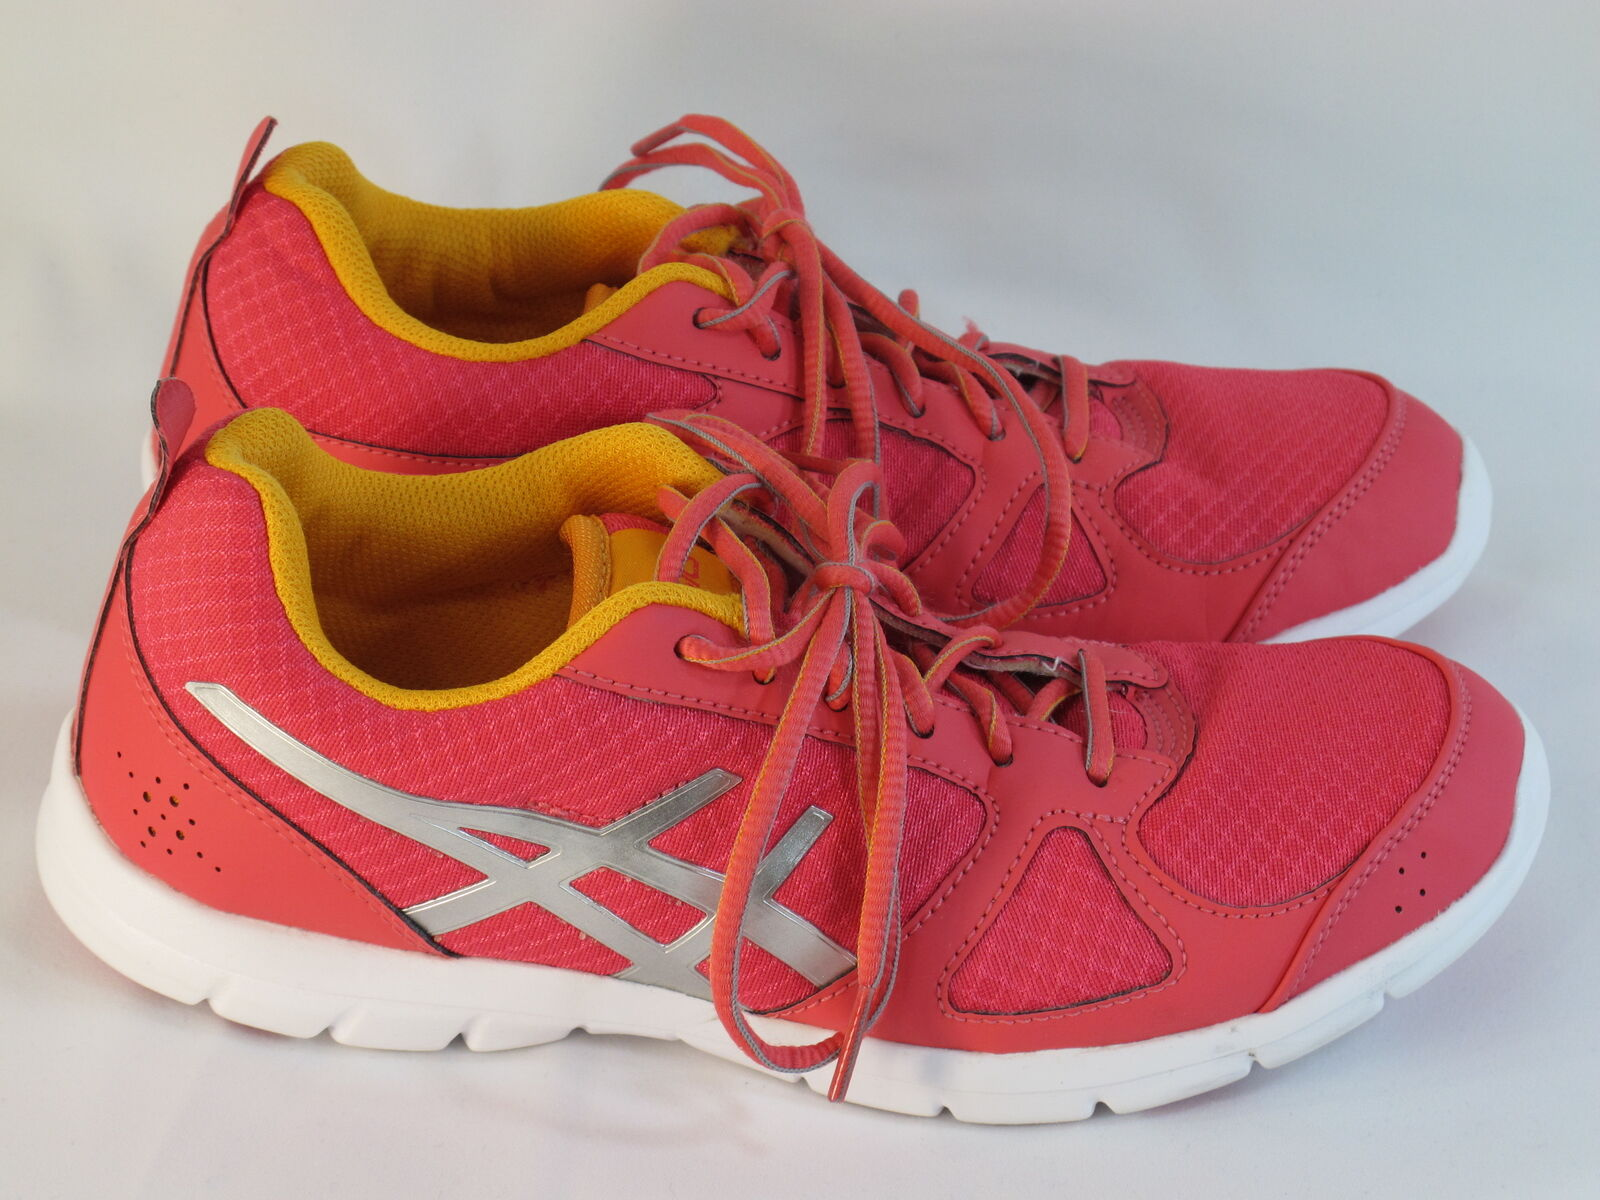 ASICS Gel Muse Fit Cross Training Shoes Women's 6.5 US Excellent Plus Condition The most popular shoes for men and women